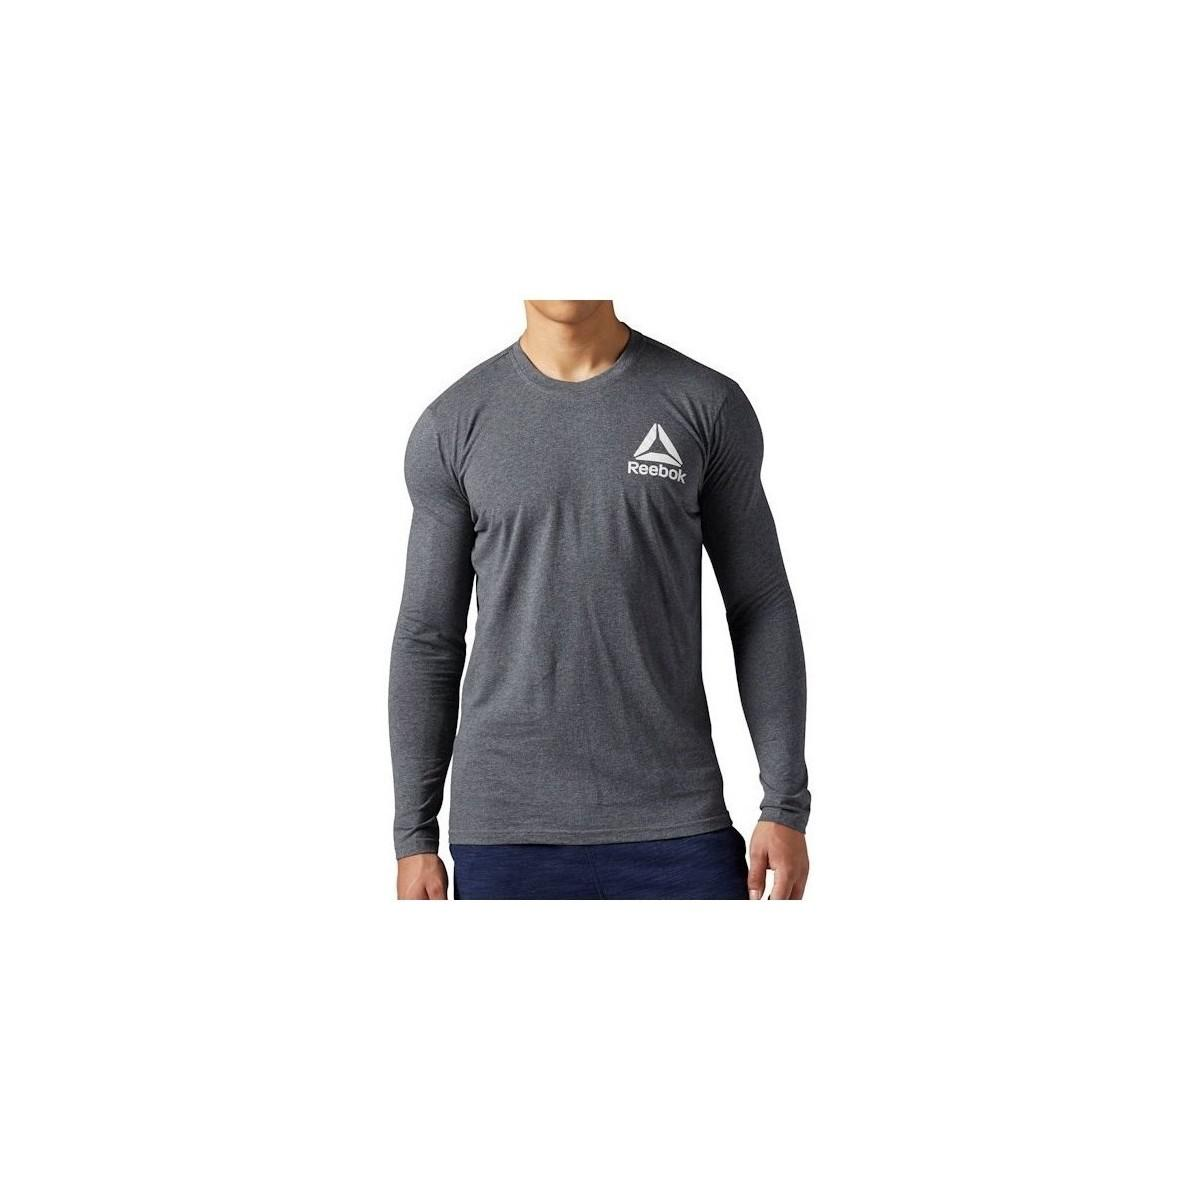 Reebok Americana Ls Men s In Grey in Gray for Men - Lyst f15d629a949